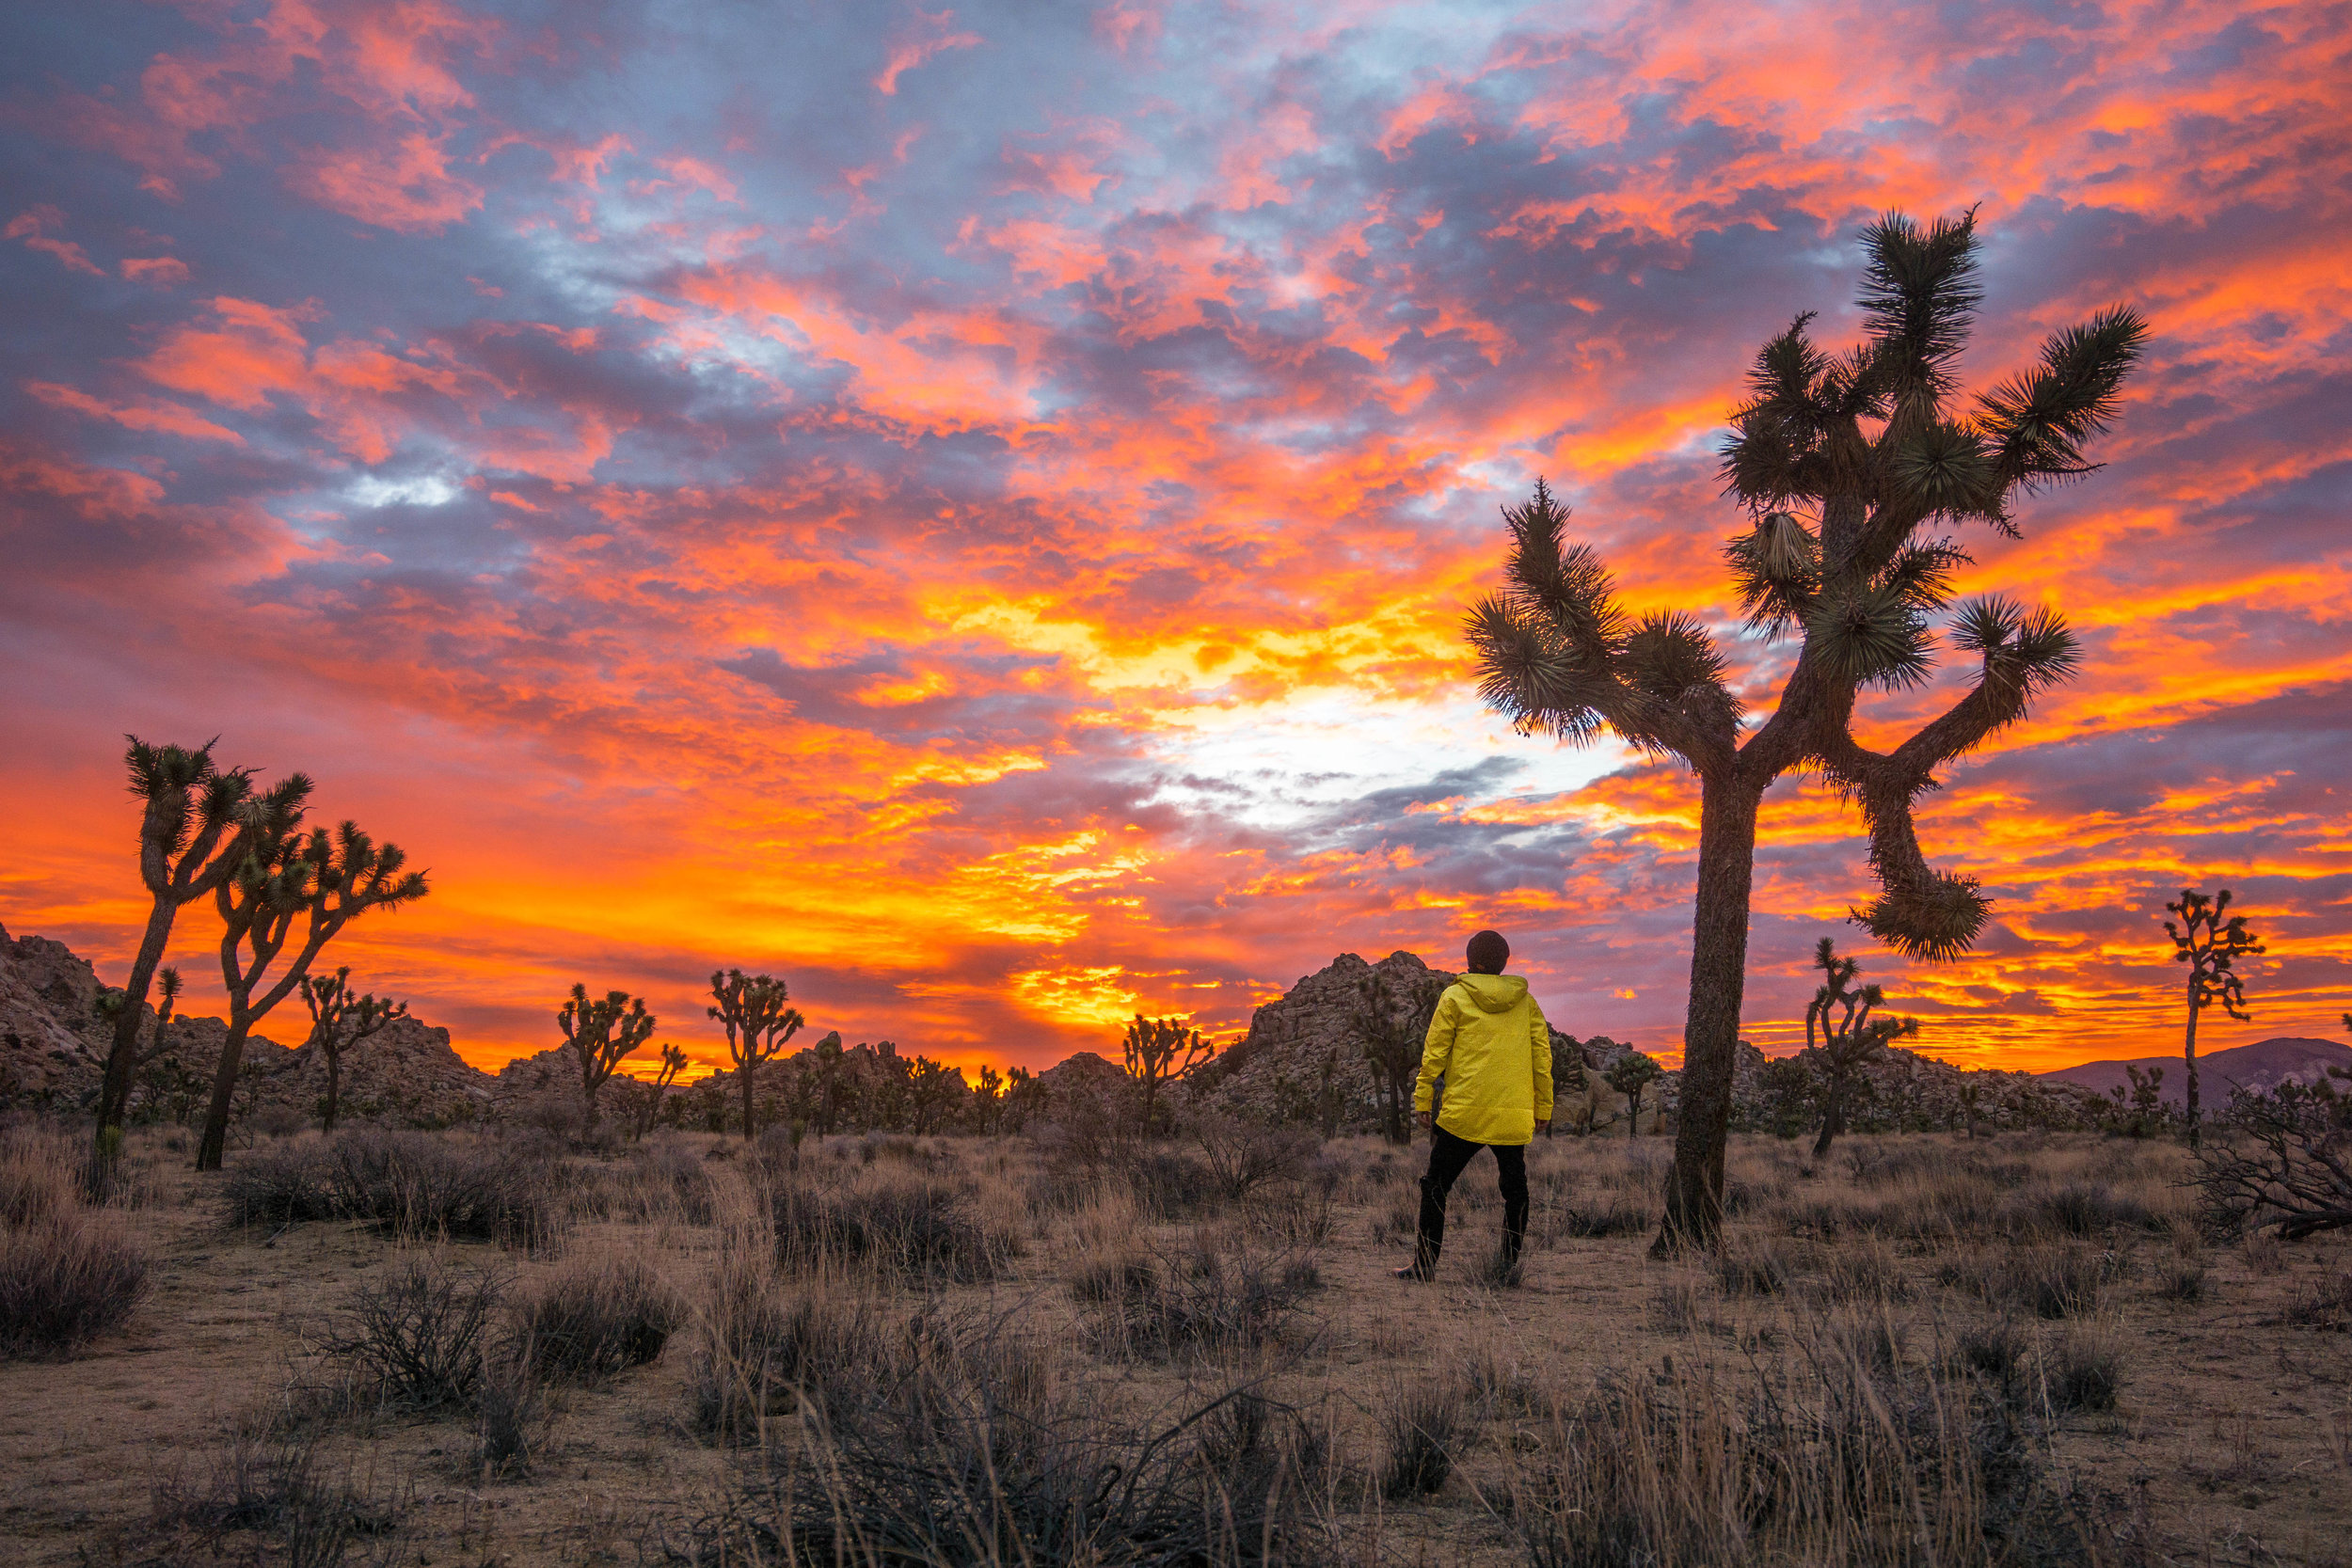 As the sky continued to burn like a colorful inferno, we wandered in amazement among Joshua Tree's alien landscape.